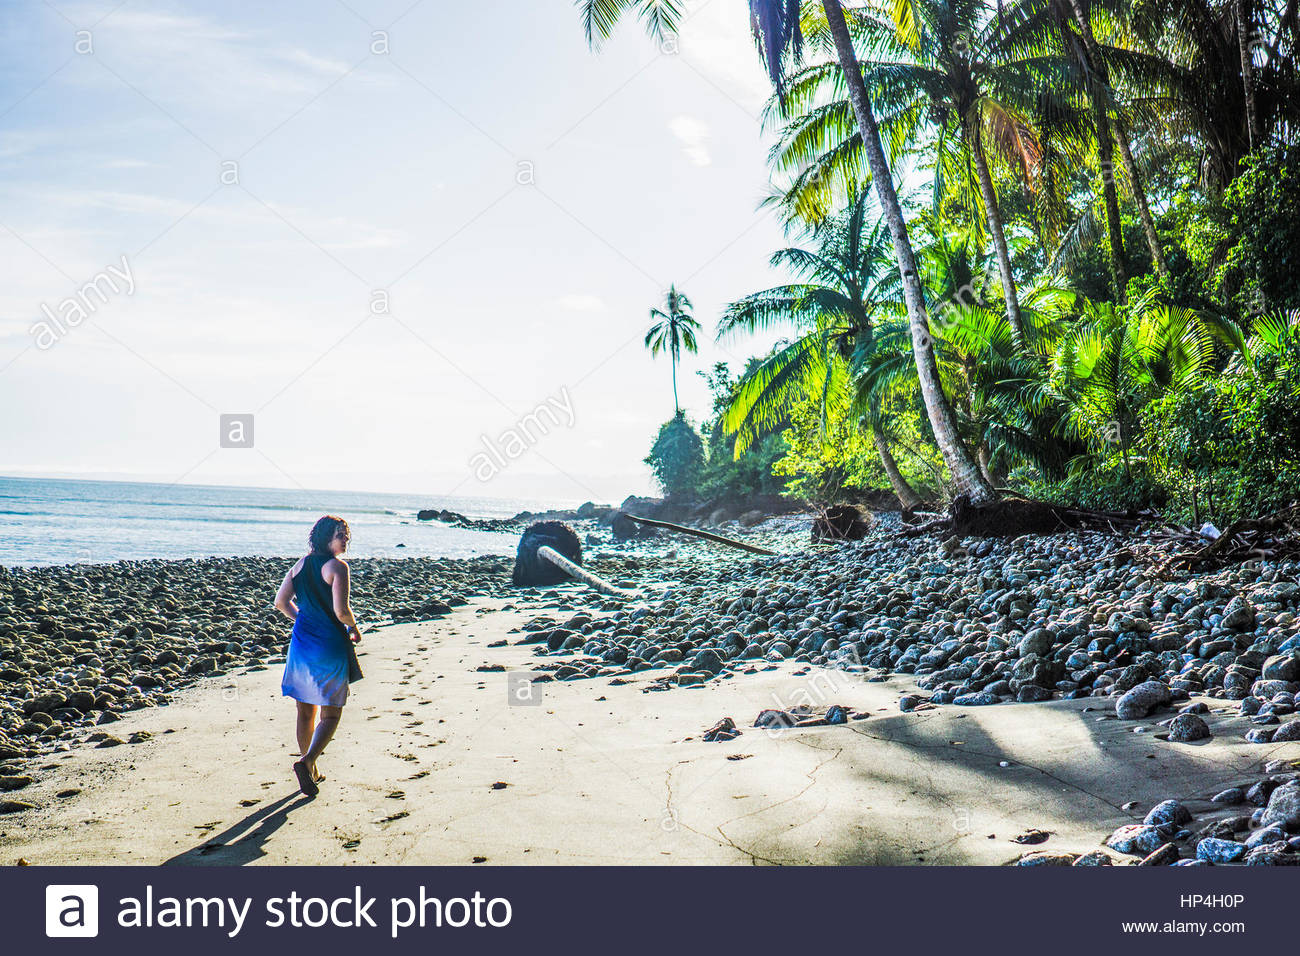 Exploring the rural coast of Costa rica, Osa peninsula, Costa rica, Central America 2015 - Stock Image